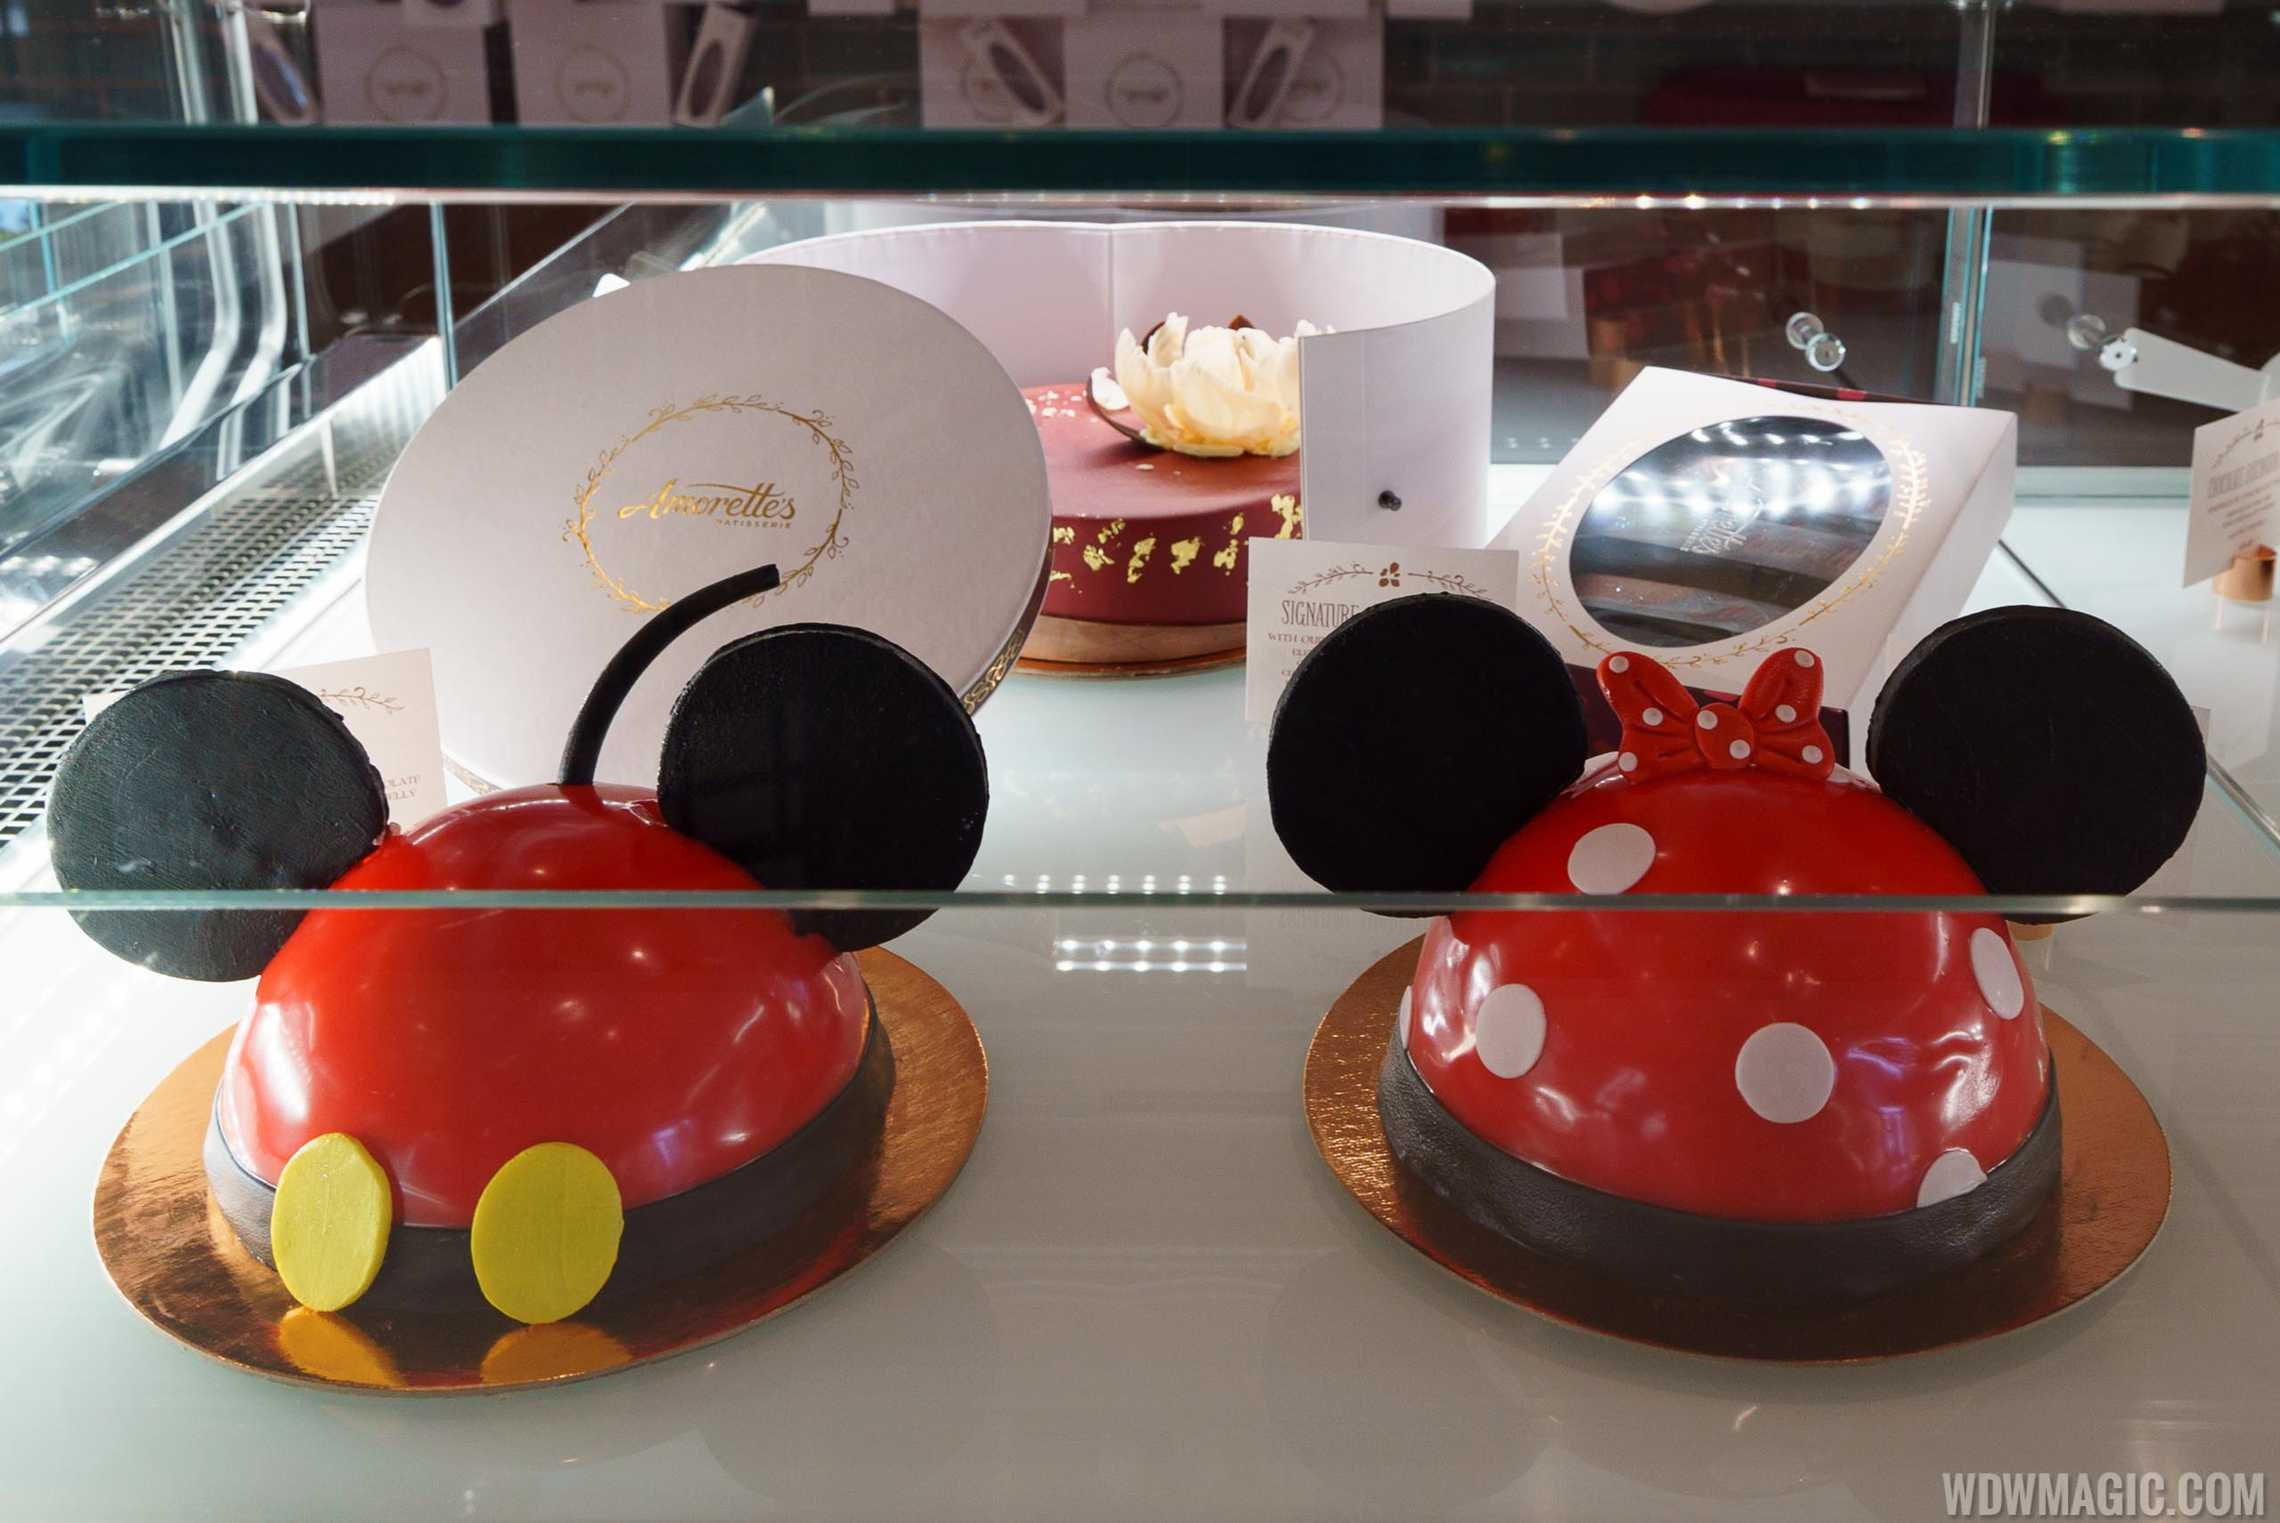 Amorette's Patisserie - Mickey and Minnie Dome Cakes